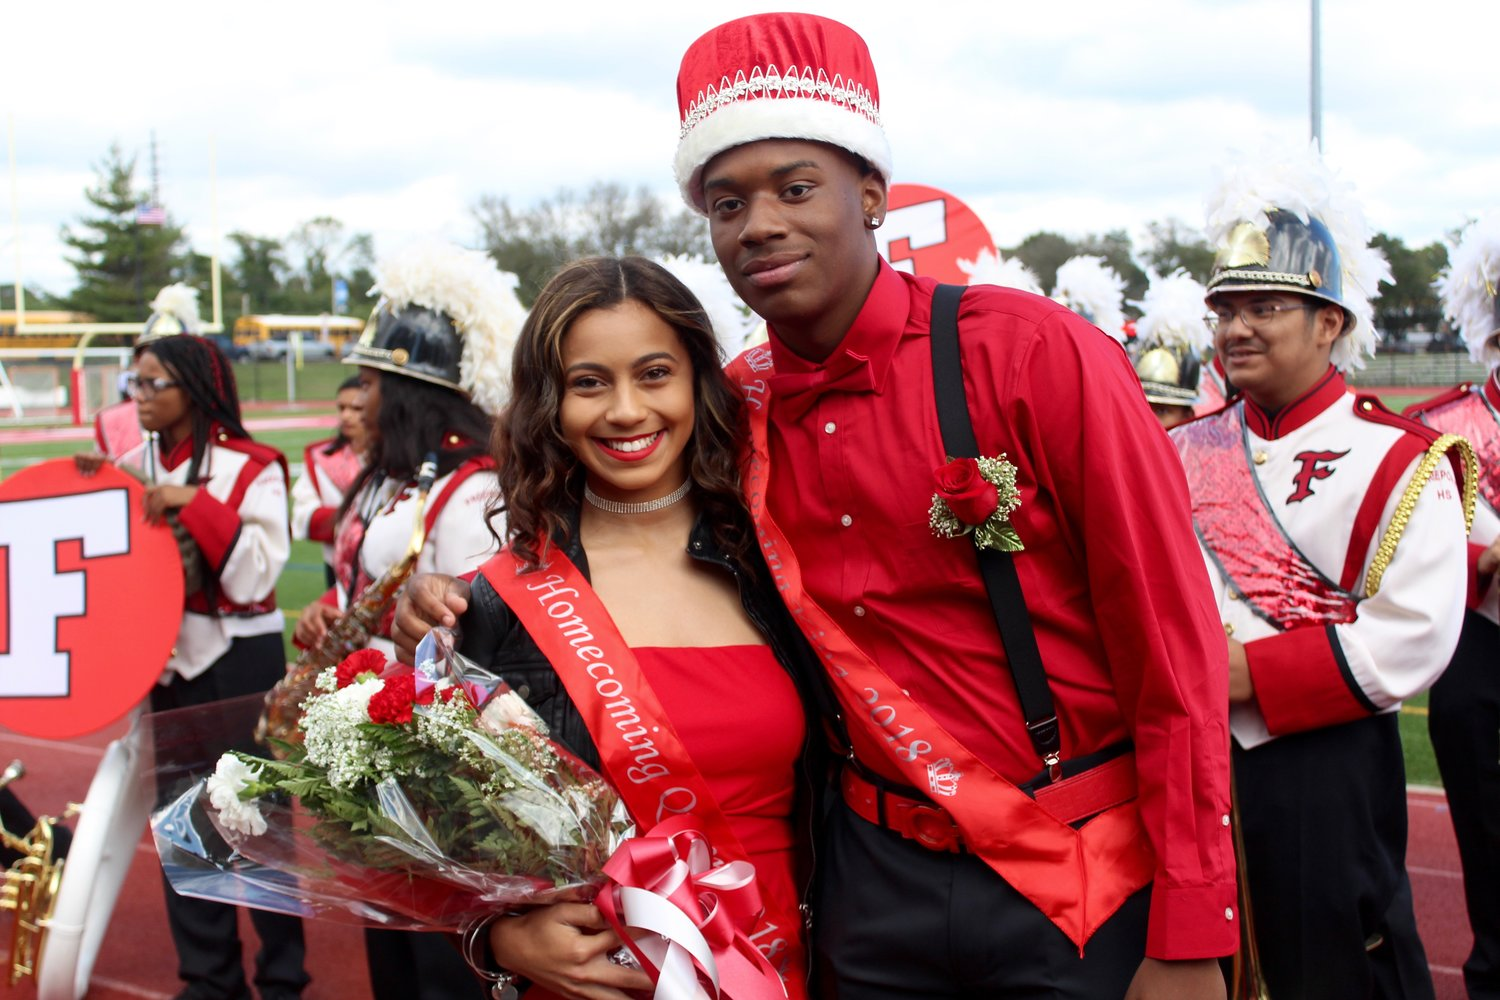 The Freeport High School Homecoming queen and king, Mia Almonte and Thornton Brown.